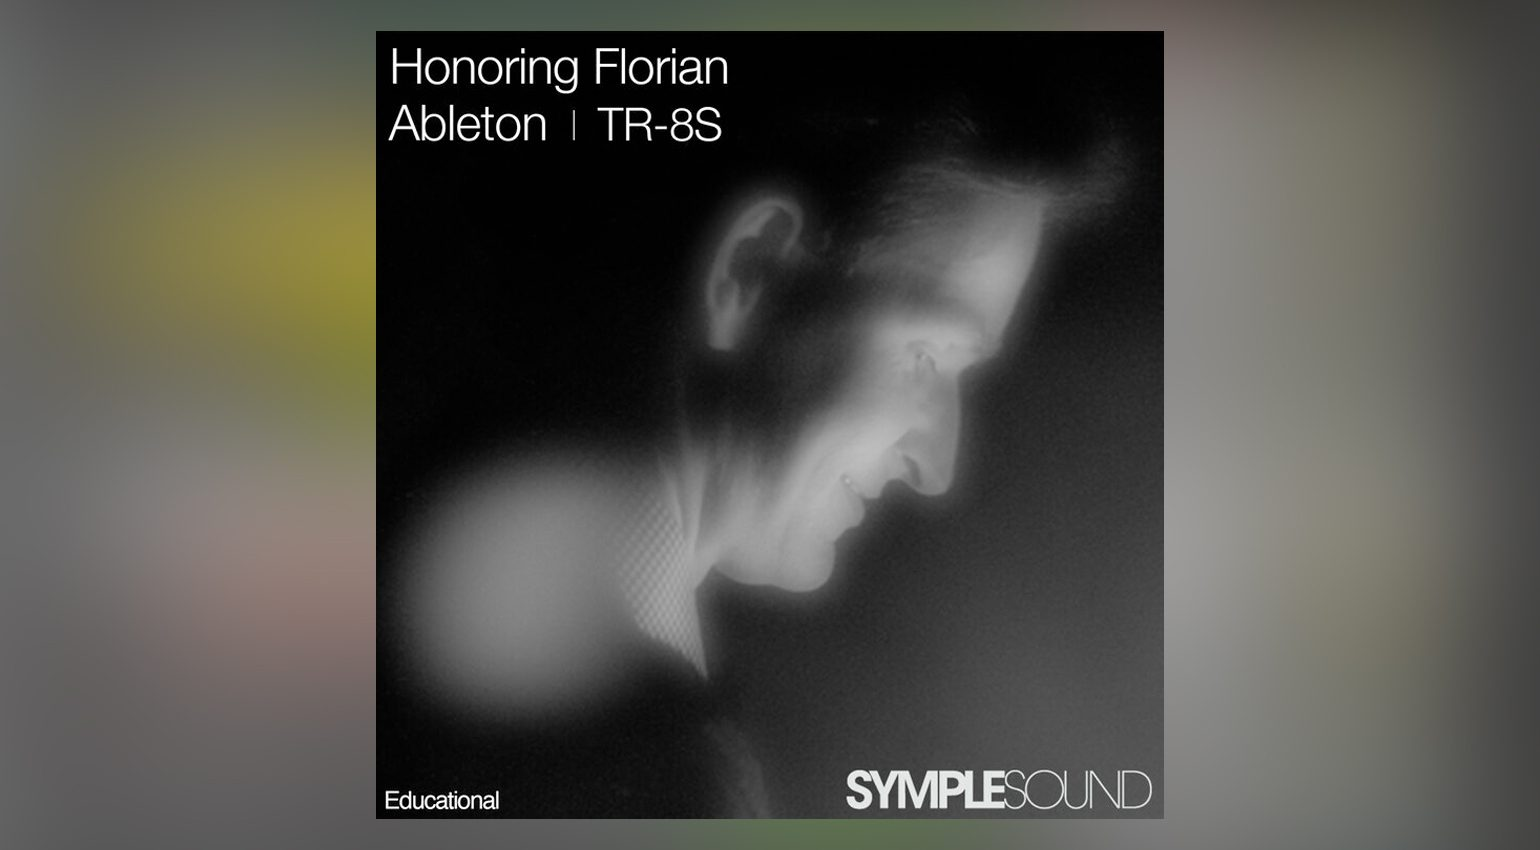 SympleSound Honoring Florian